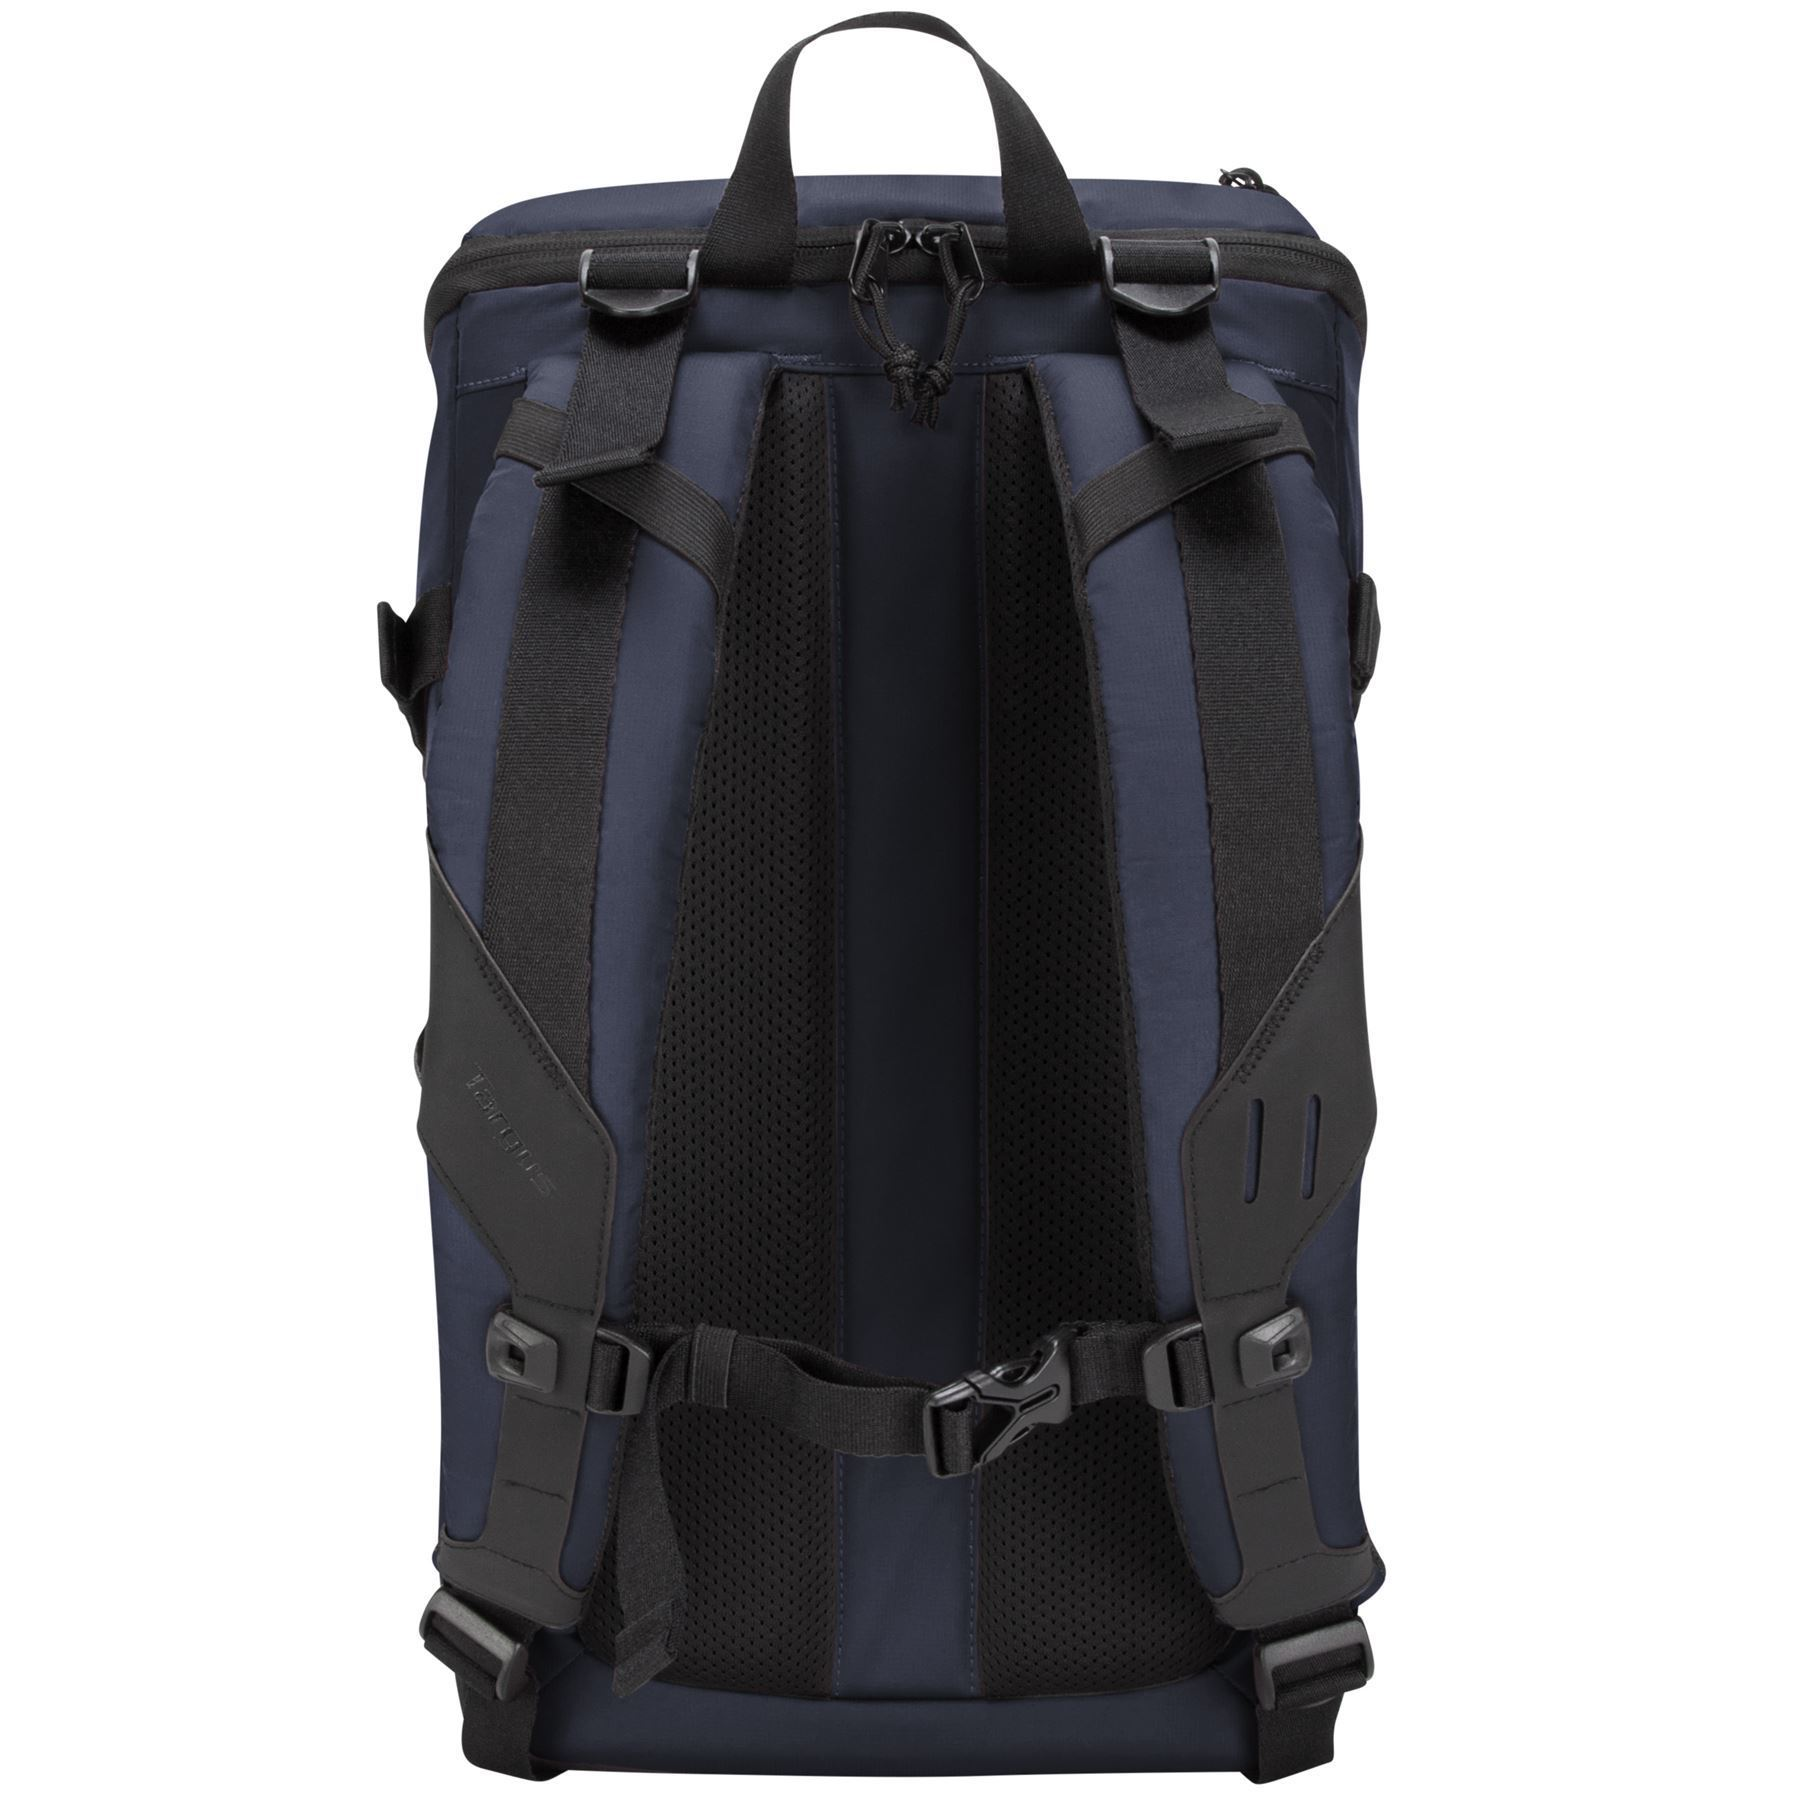 0054666_sol-lite-14-laptop-backpack-navy.jpeg